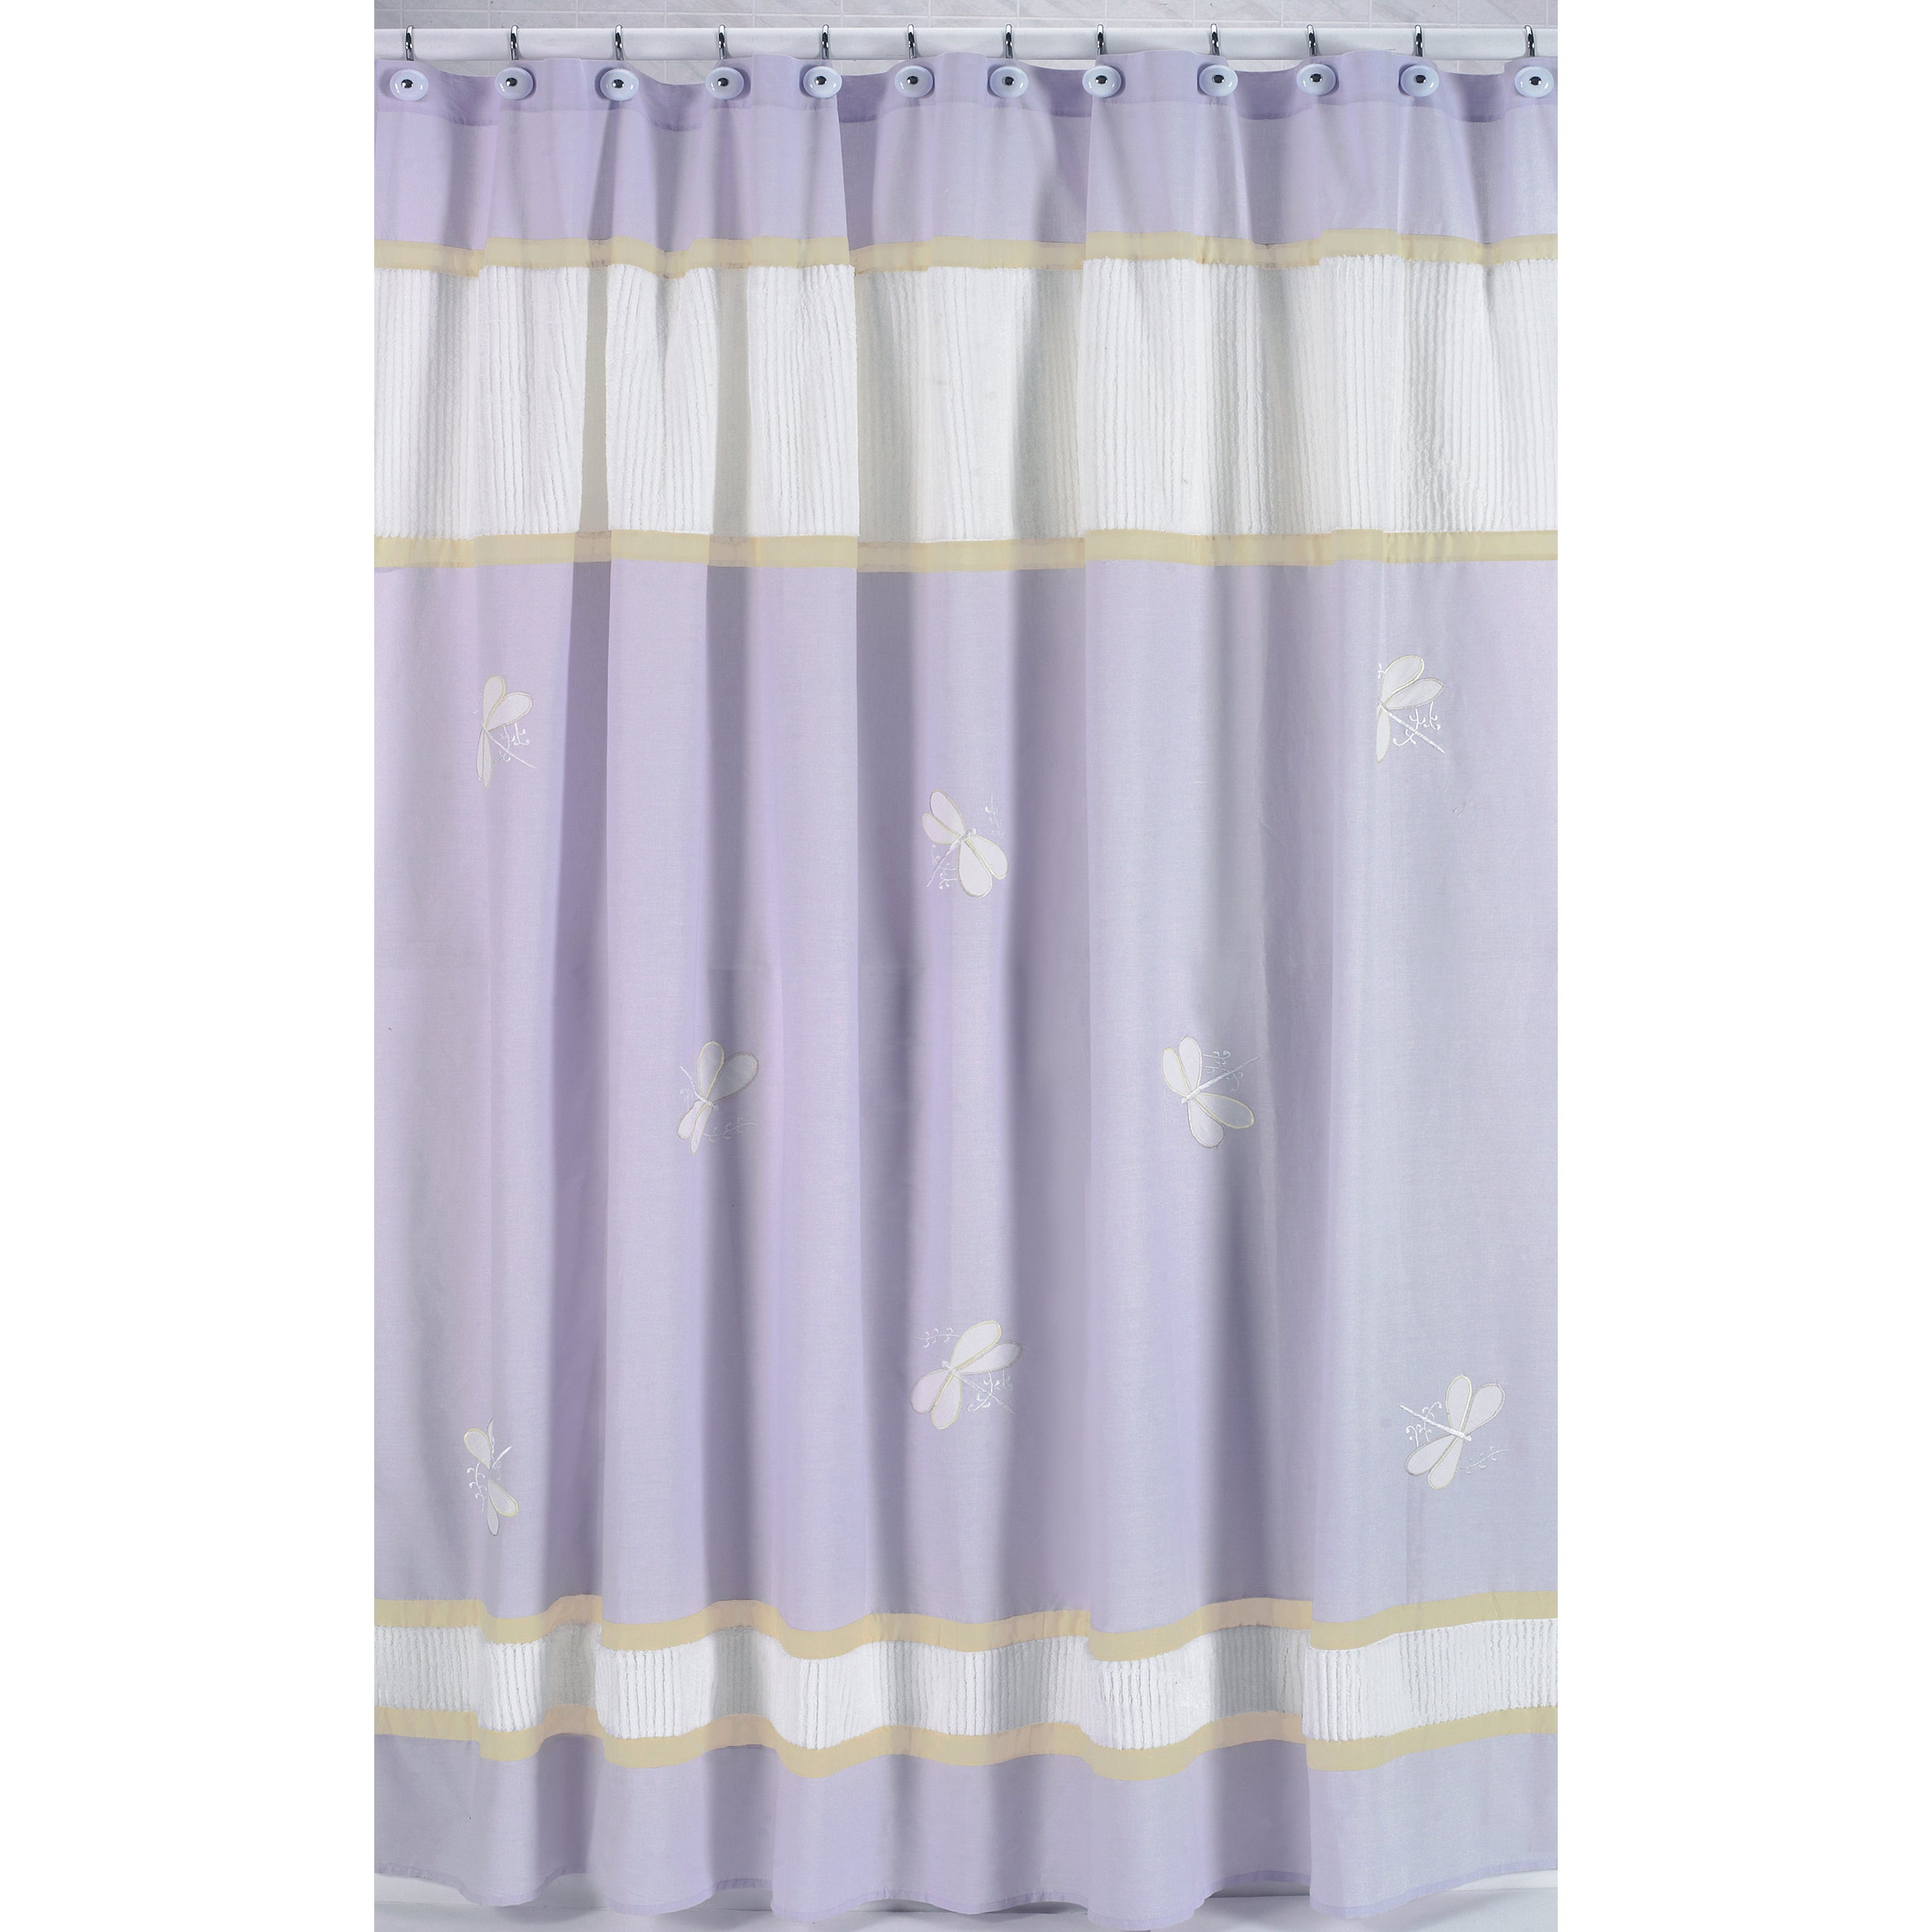 Sweet Jojo Designs Purple Dragonfly Dreams Kids Shower Curtain at Sears.com